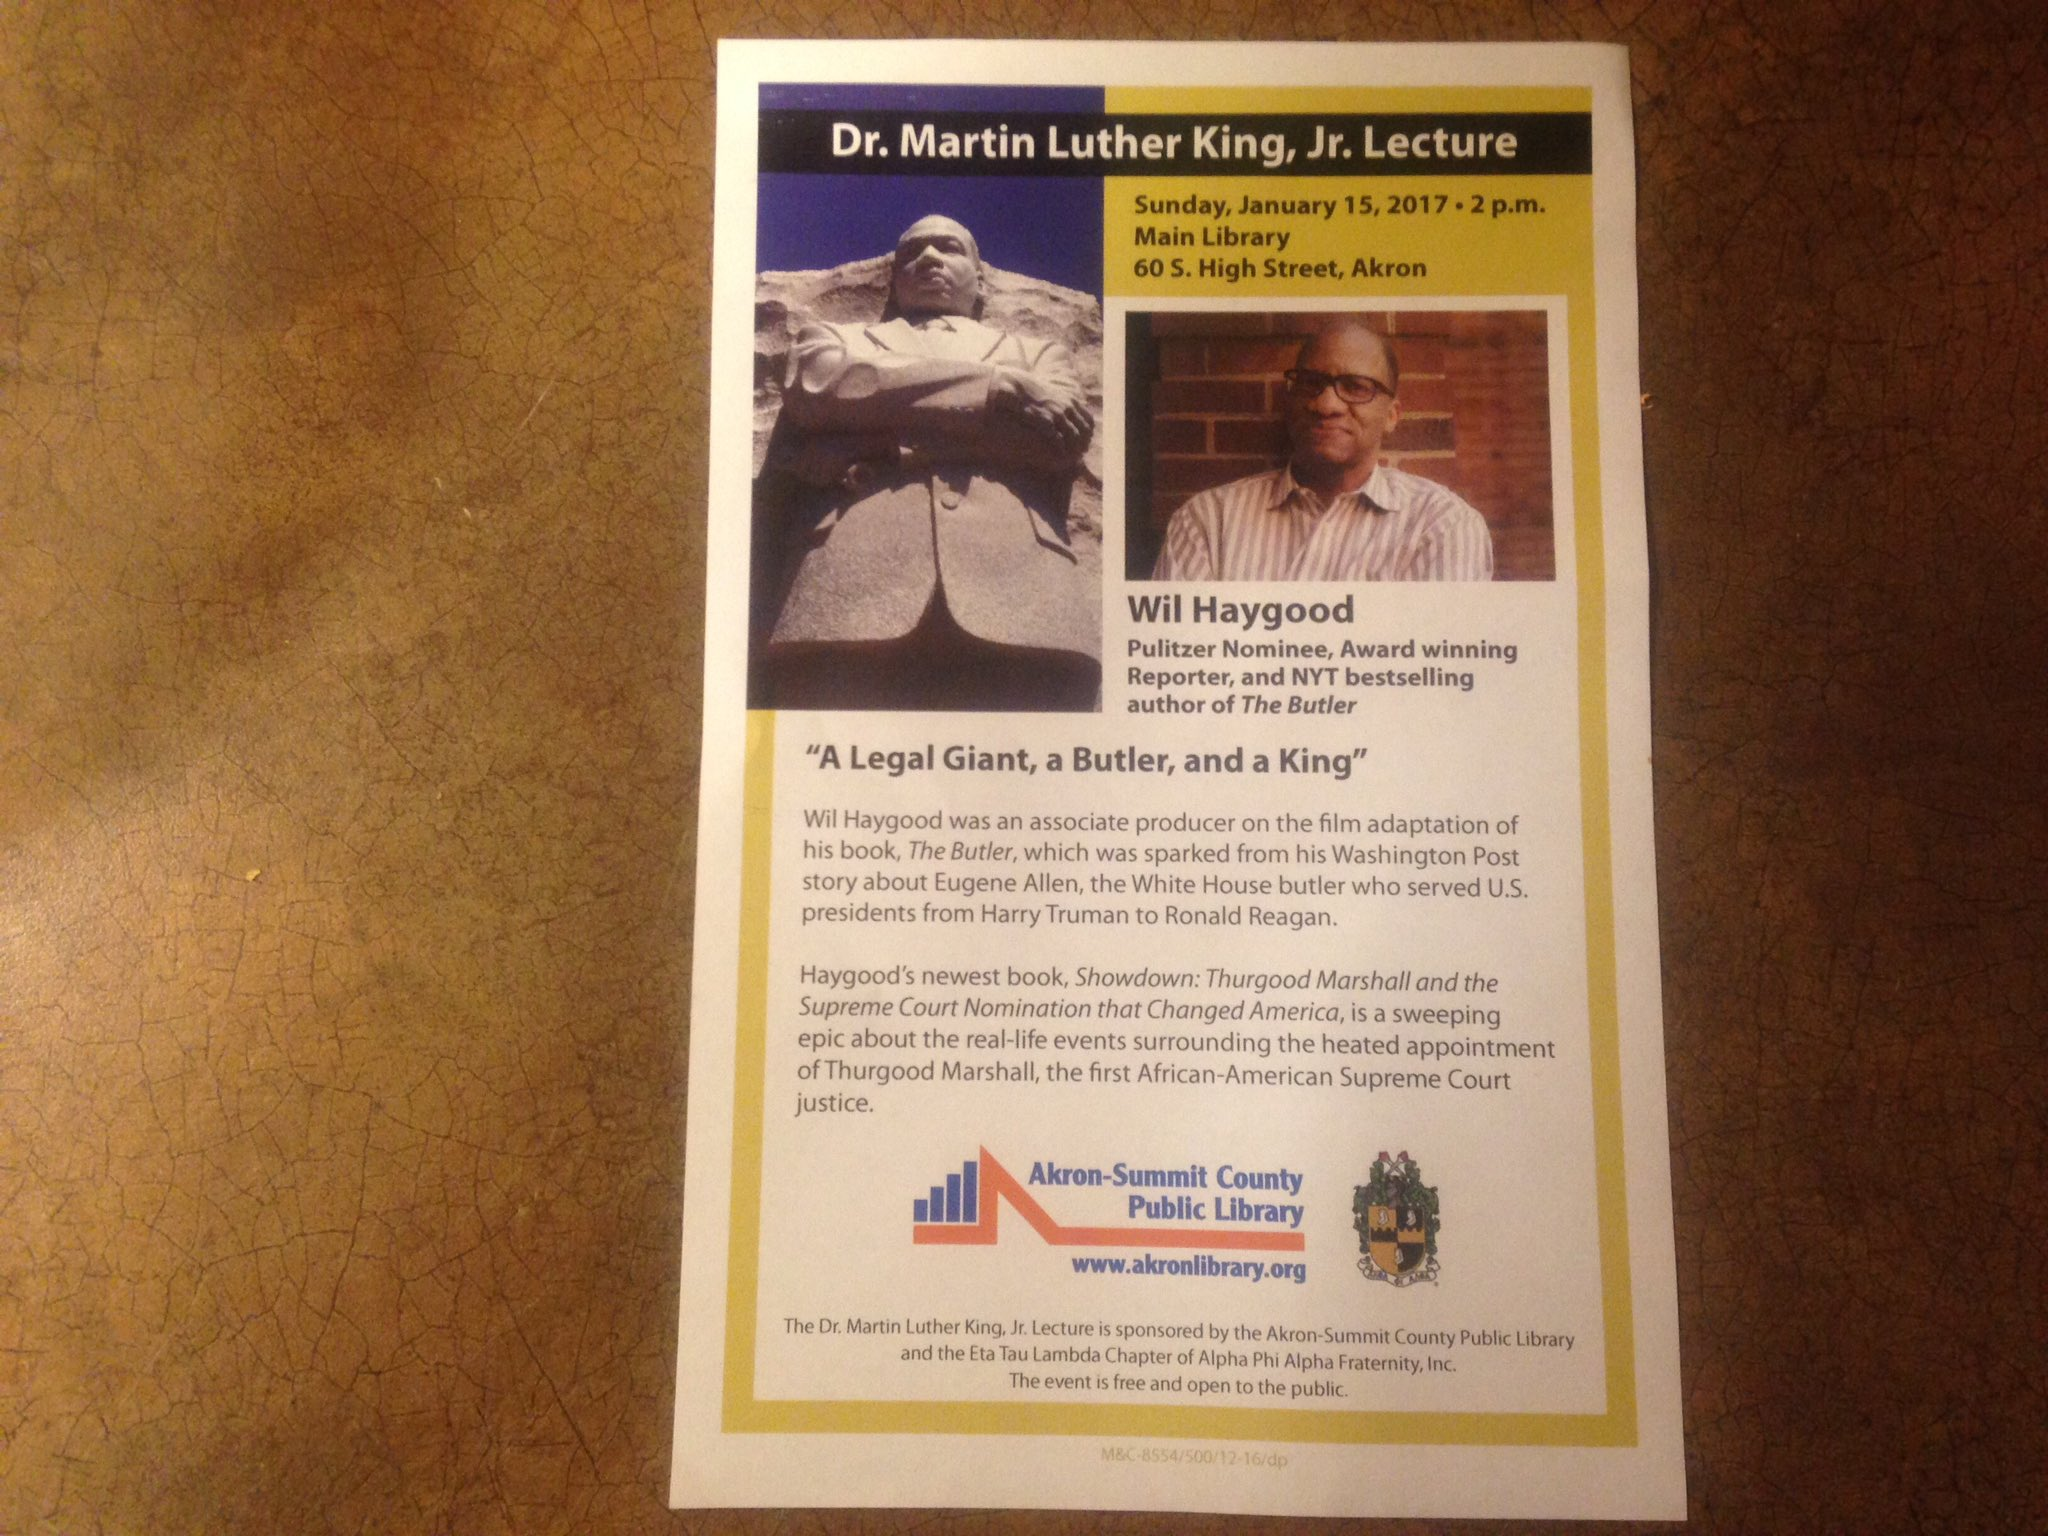 Great program on MLK Day thank you Mr.Wil Haygood At the Summit County public library on Sunday https://t.co/5pBd0Khv01